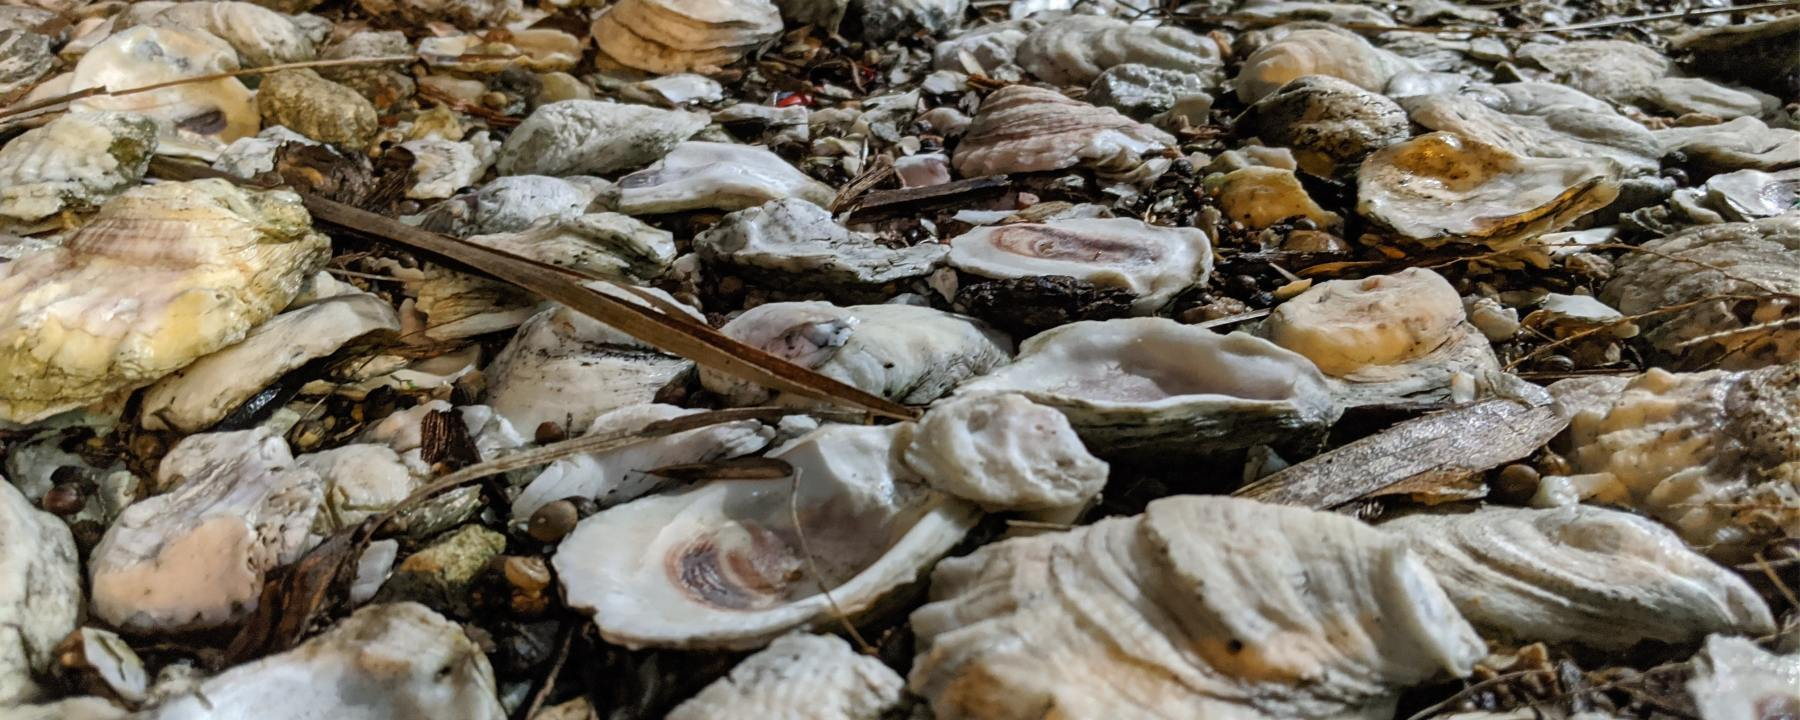 oyster shells pearls